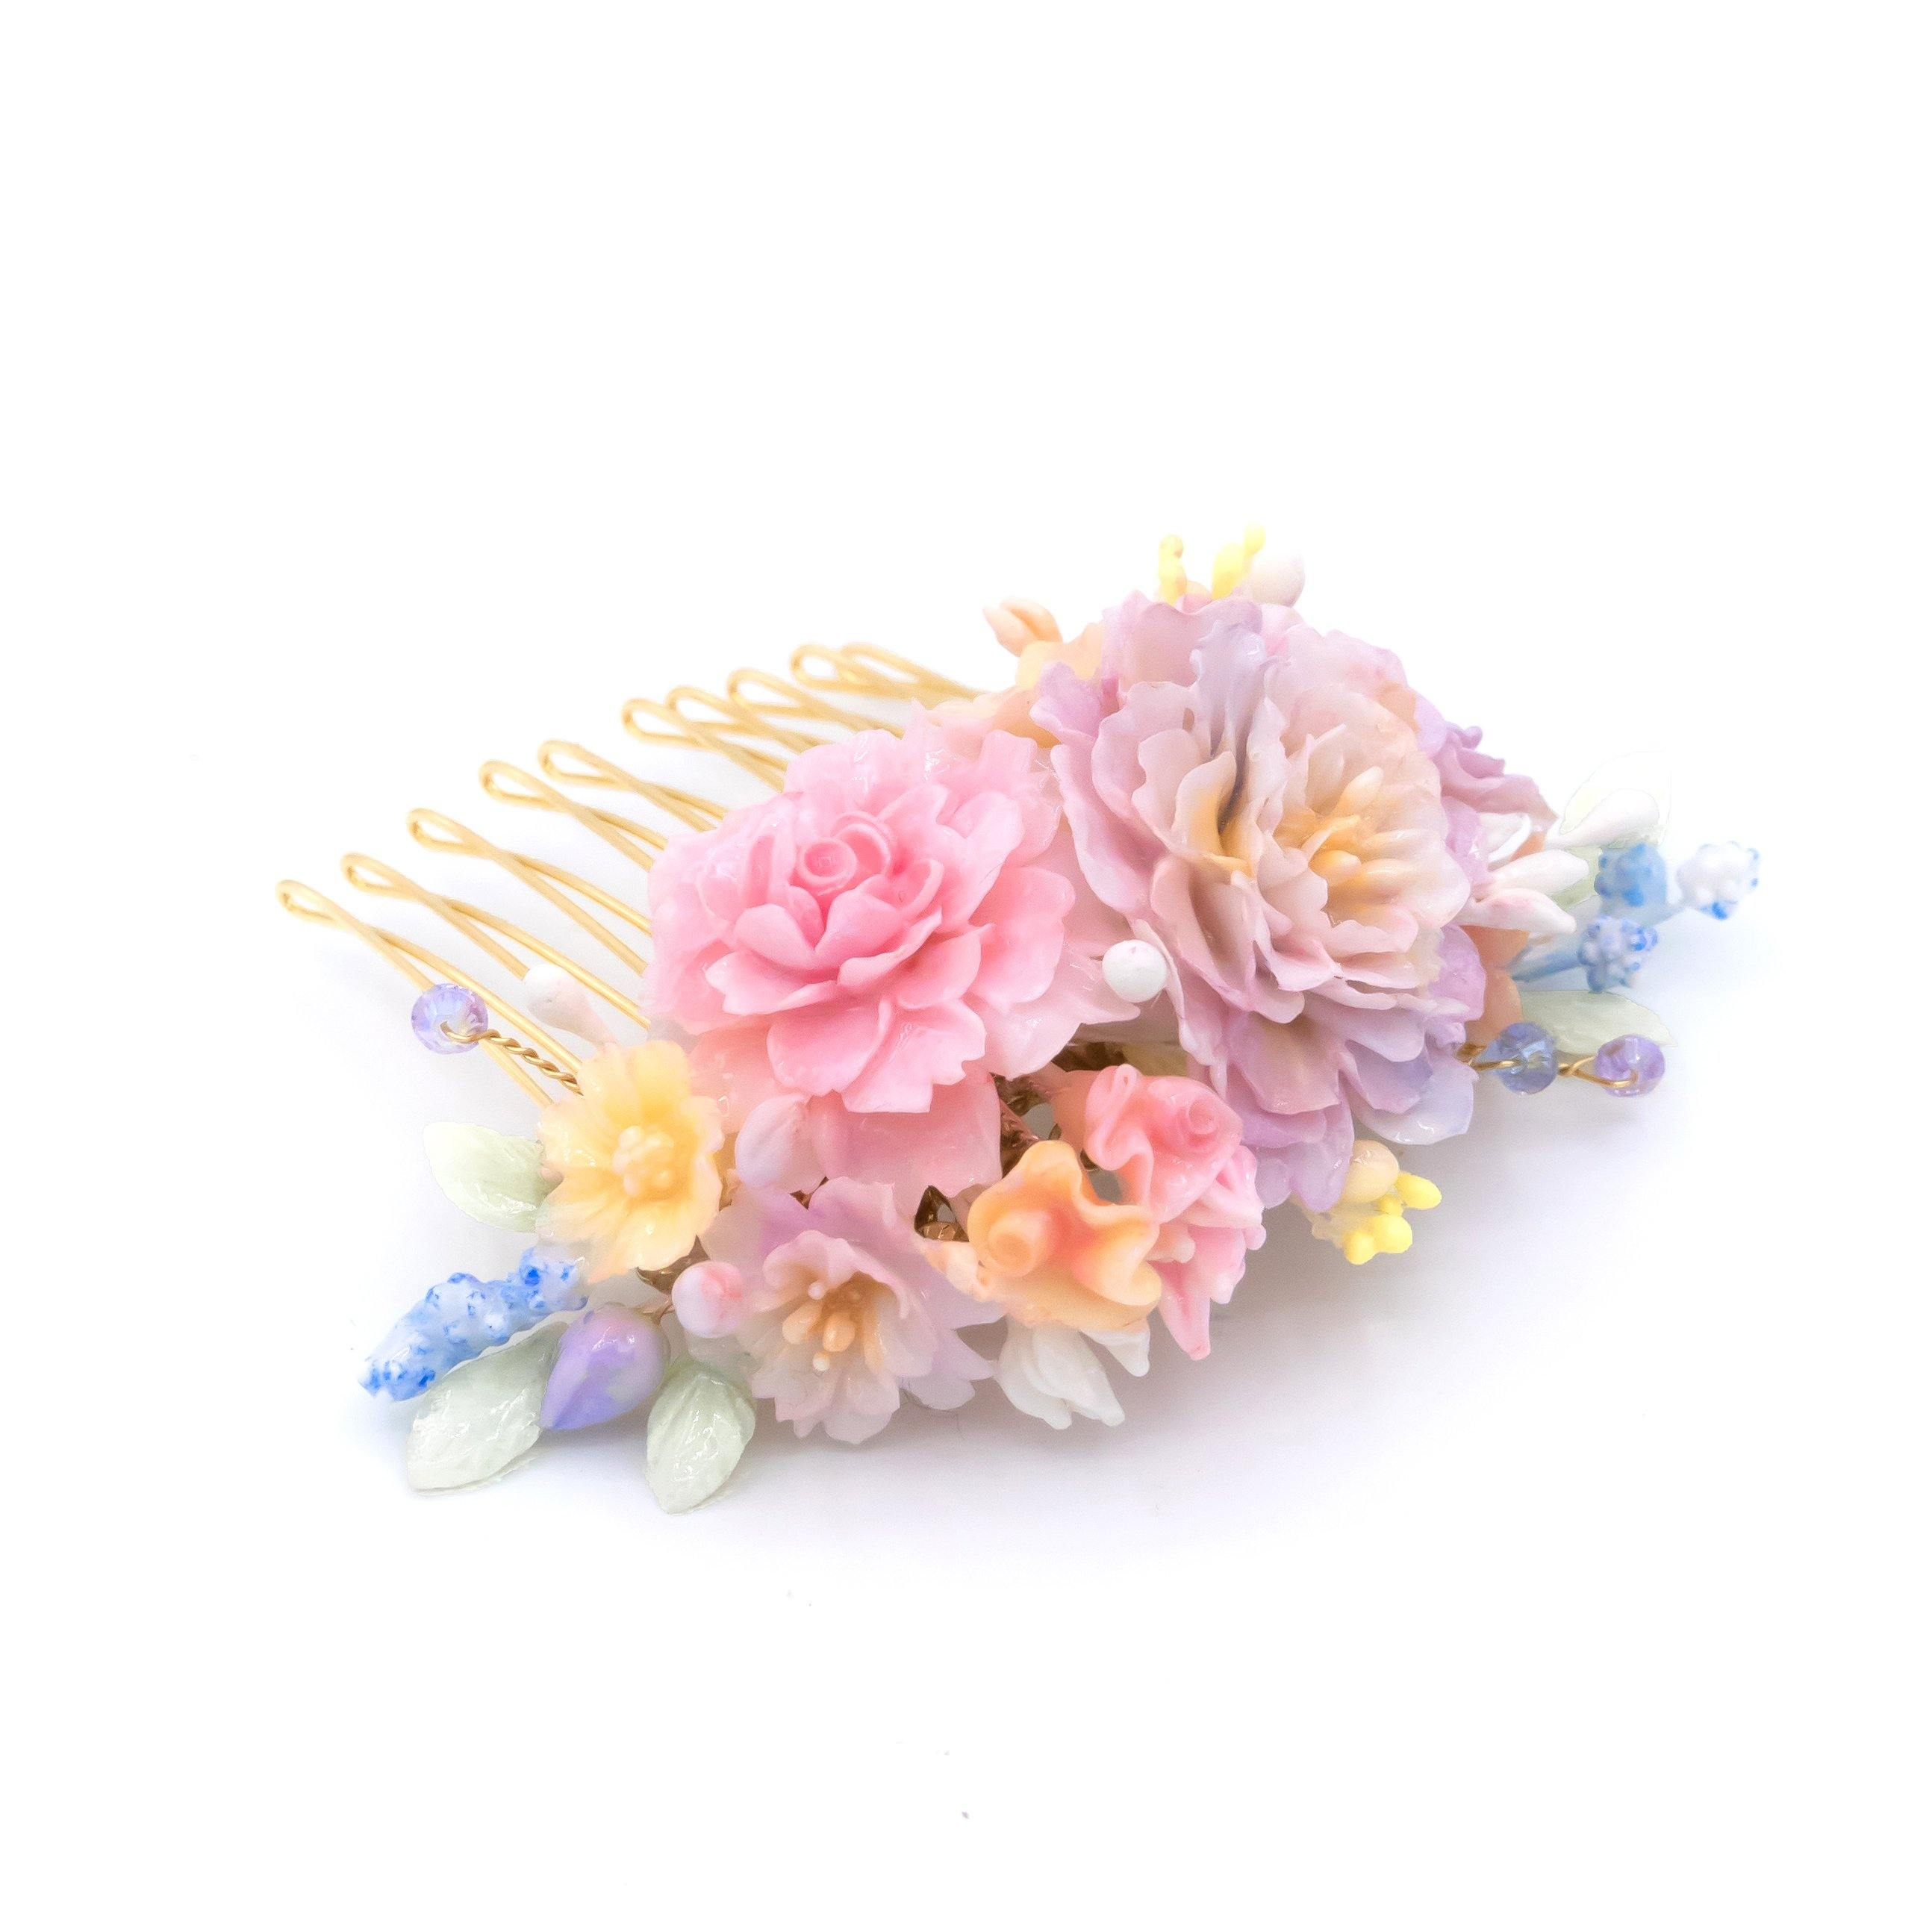 Allusion Gold-plated Floral Hair Comb